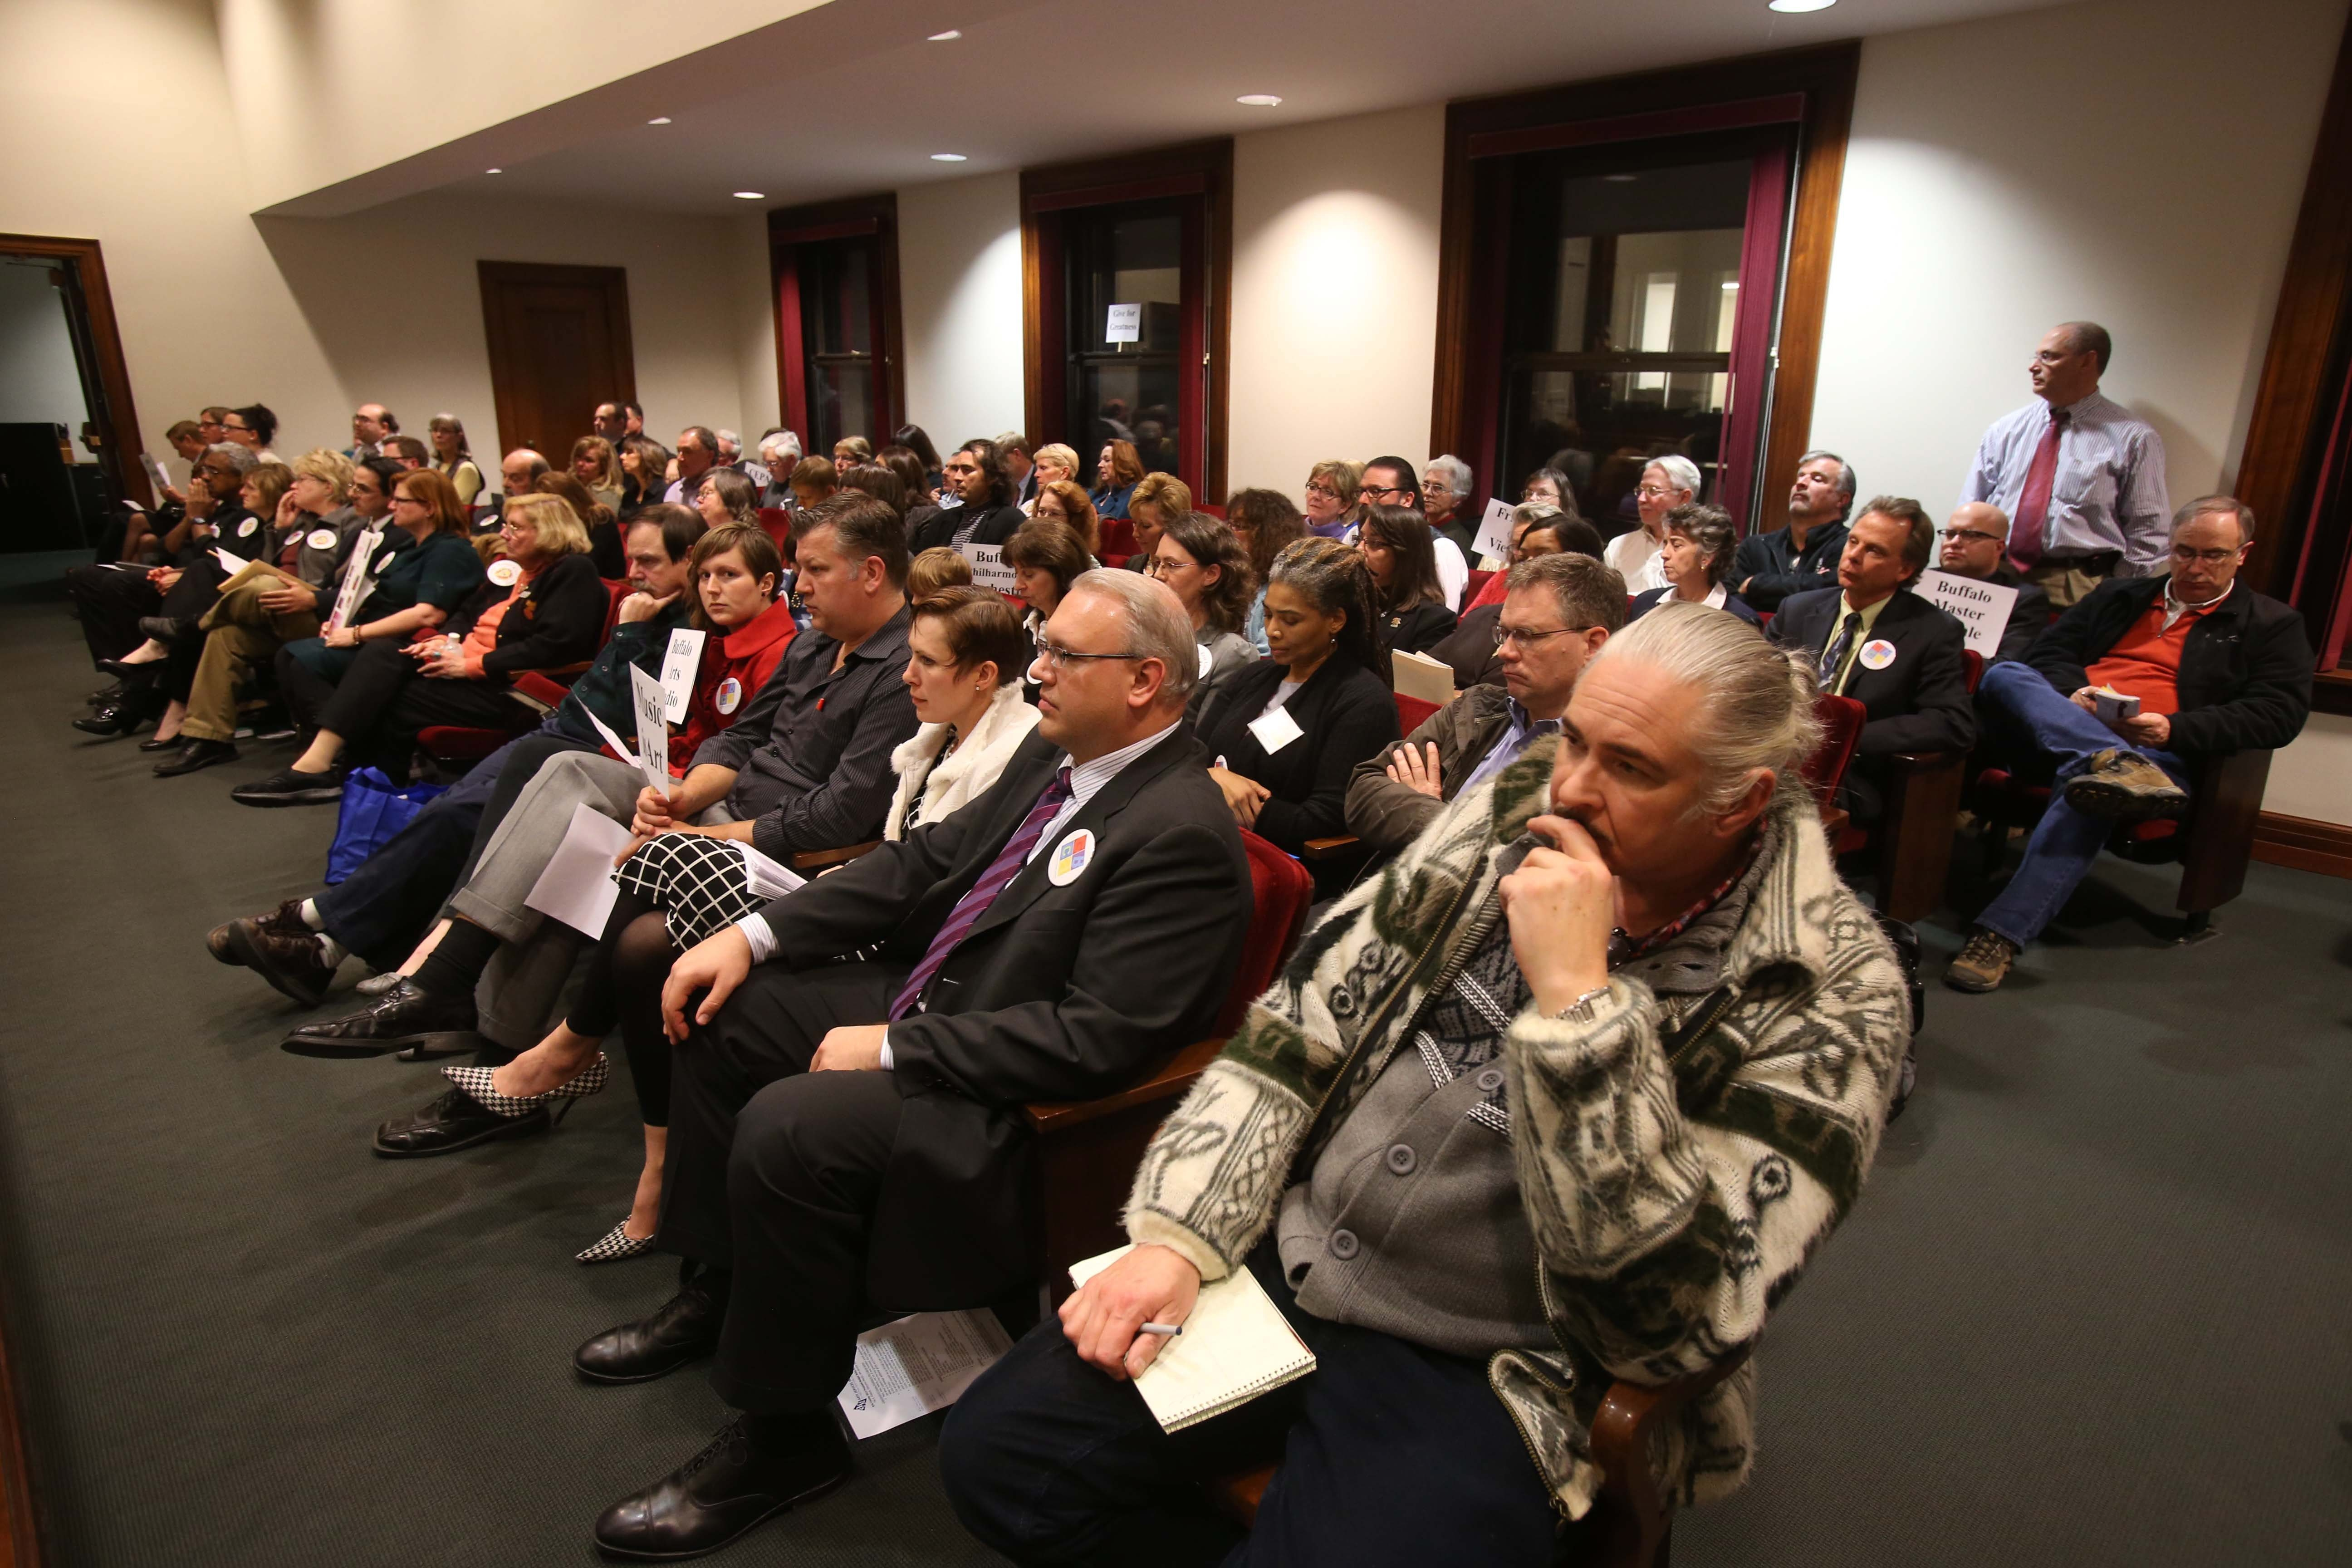 A packed house, mostly of officials from cultural groups, showed up at the County Legislature meeting on Monday. (Robert Kirkham/Buffalo News)